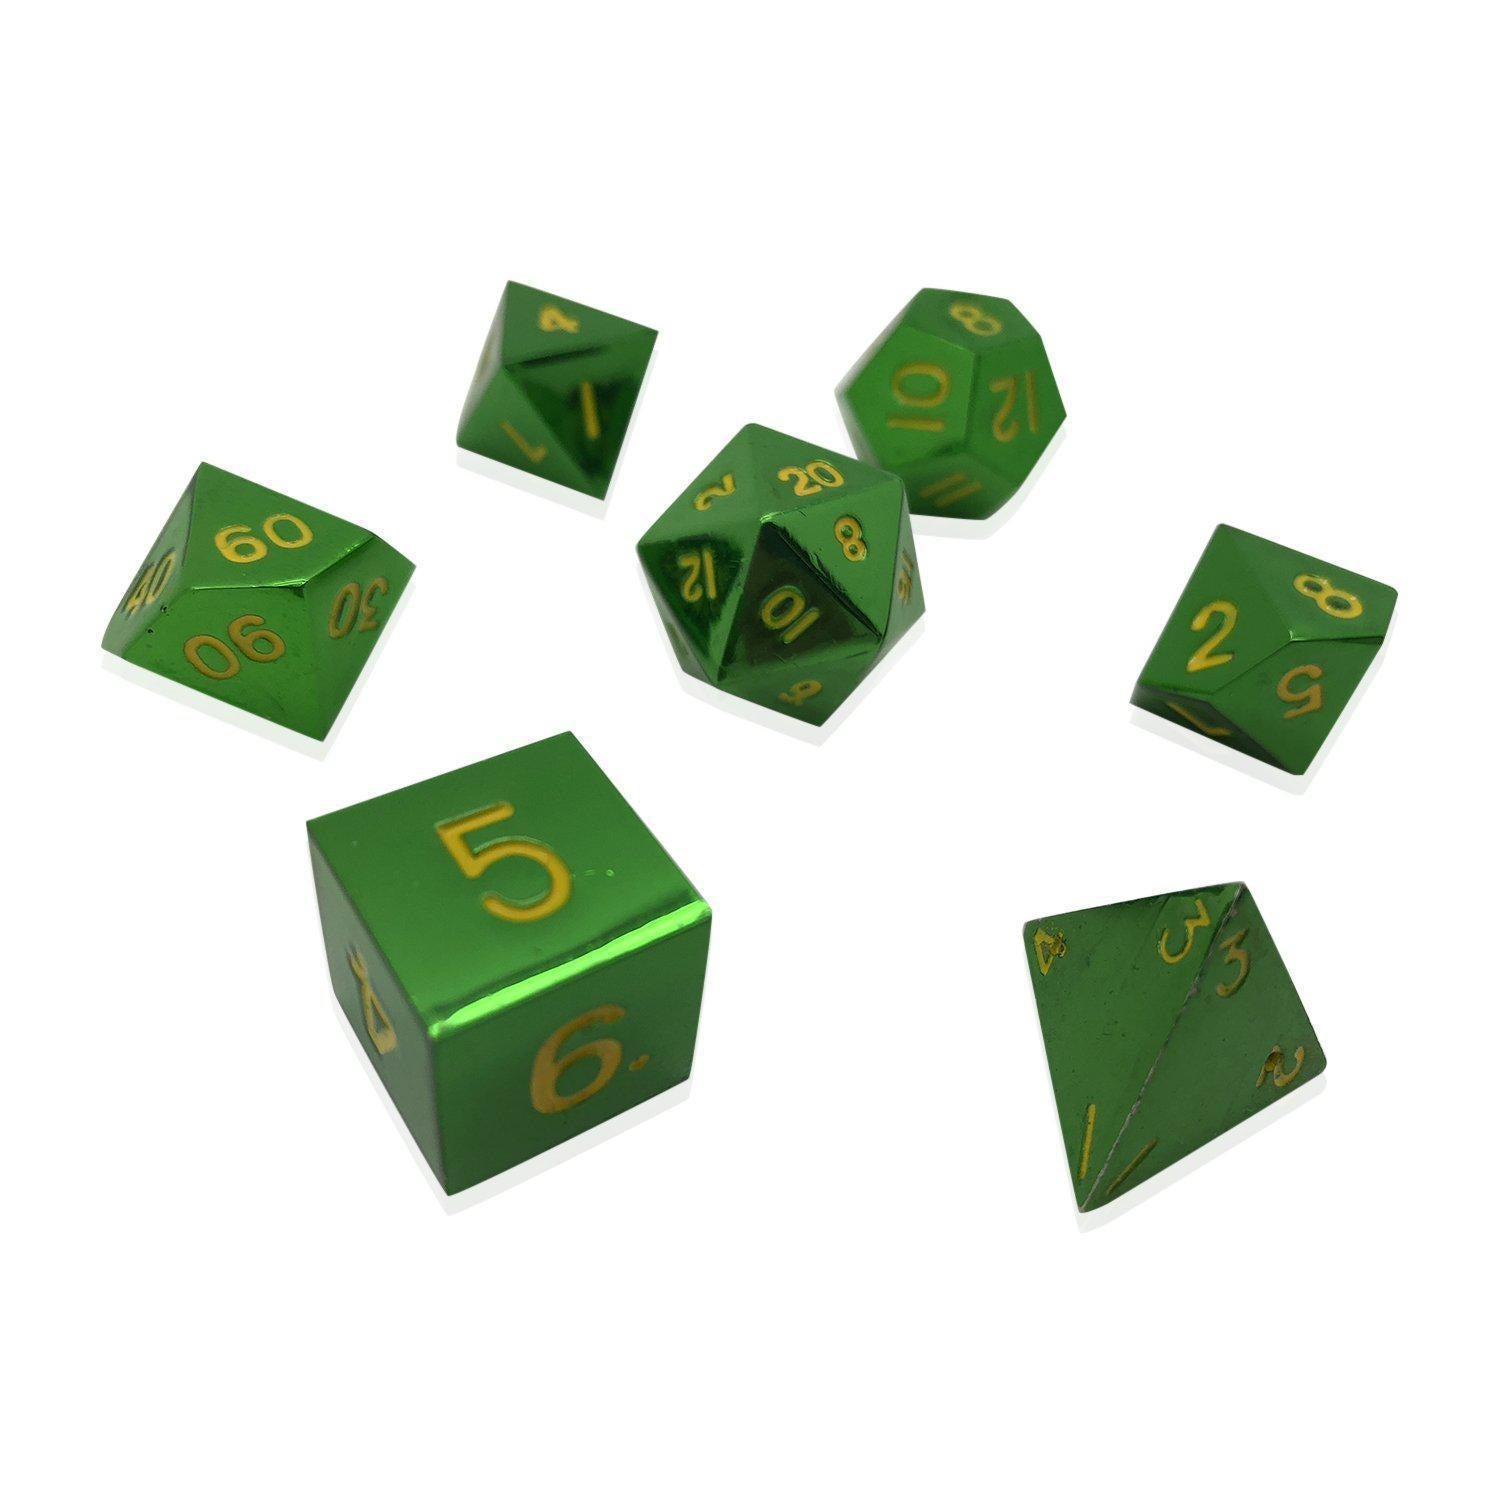 Norse Foundry 7pc Rpg Metal Dice Set Goblin Horde Overstock 31260703 A norse foundry variety coin set every quarter (must be active for 3 months to receive, us free shipping, international rates will vary and not included) coin set will be determined by norse foundry minimum of $15 msrp item(s). overstock com